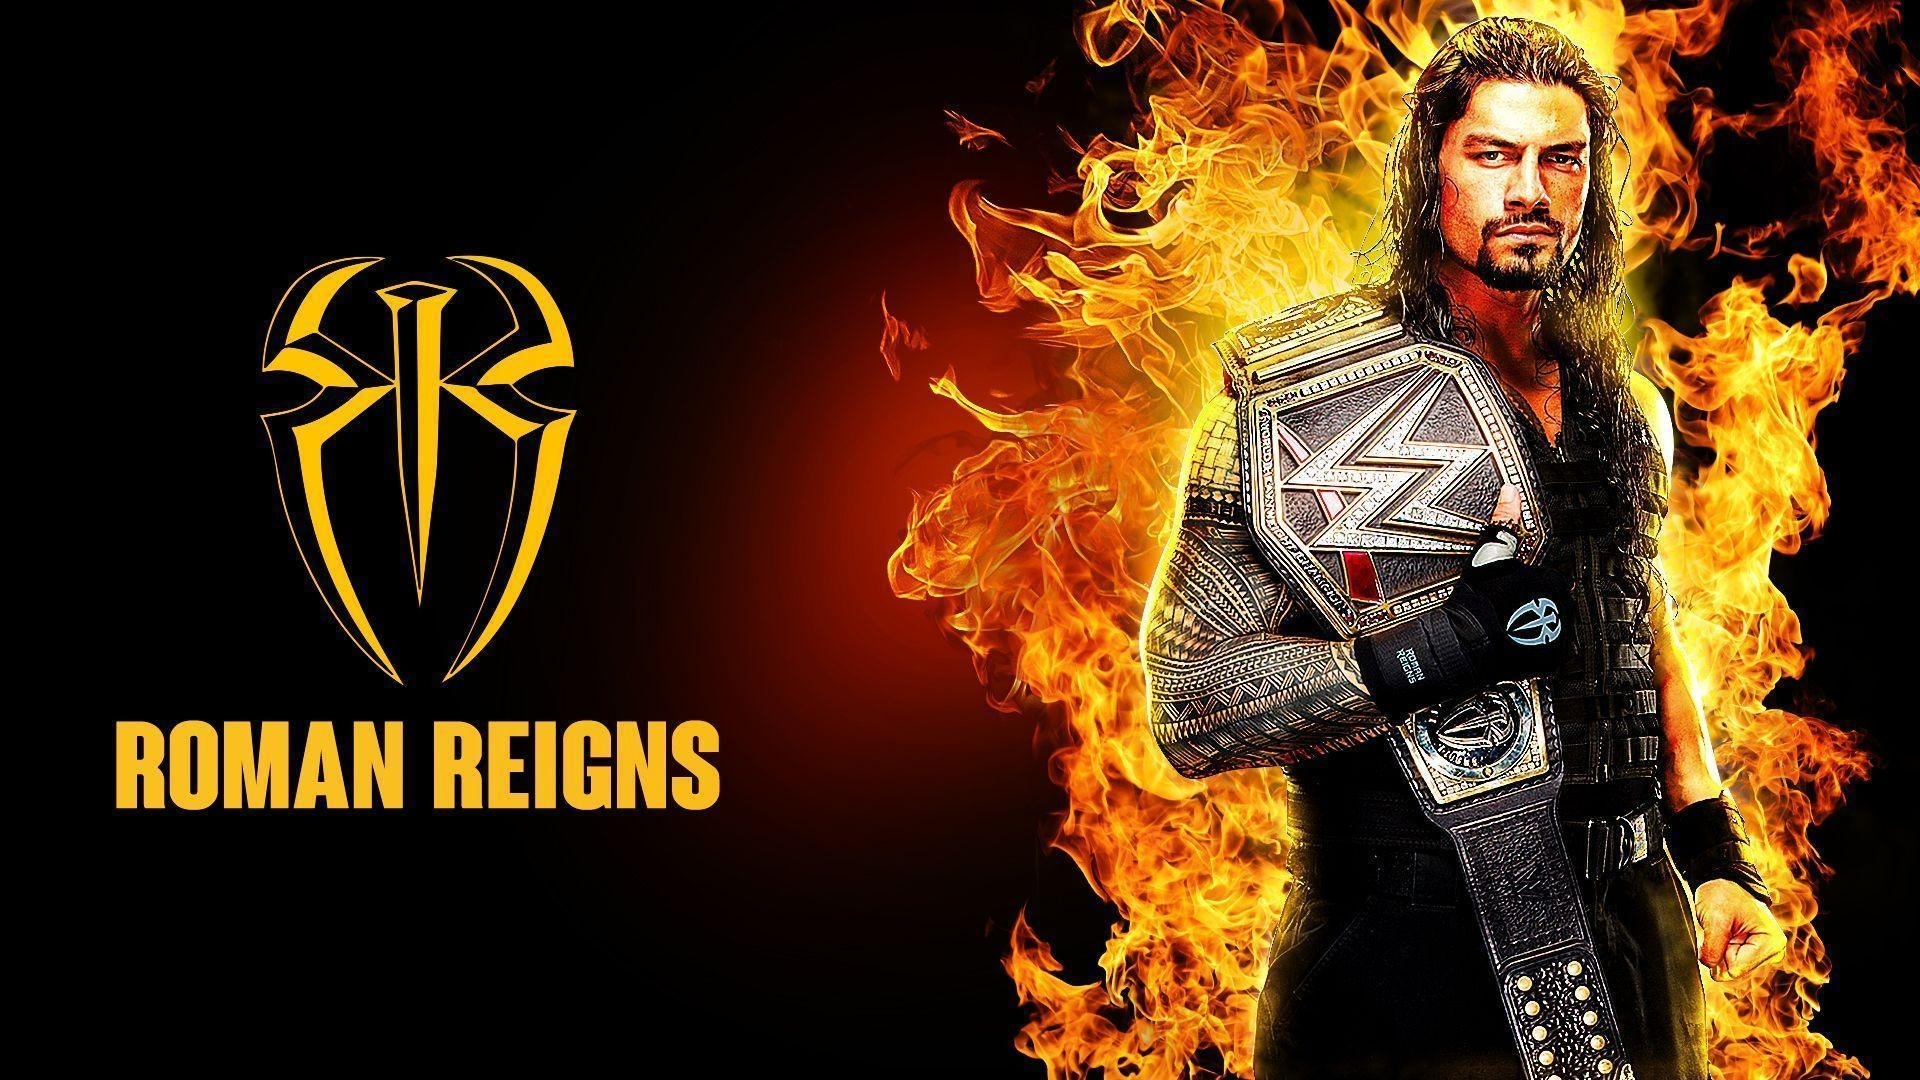 wwe roman reigns hd wallpapers - wallpaper cave